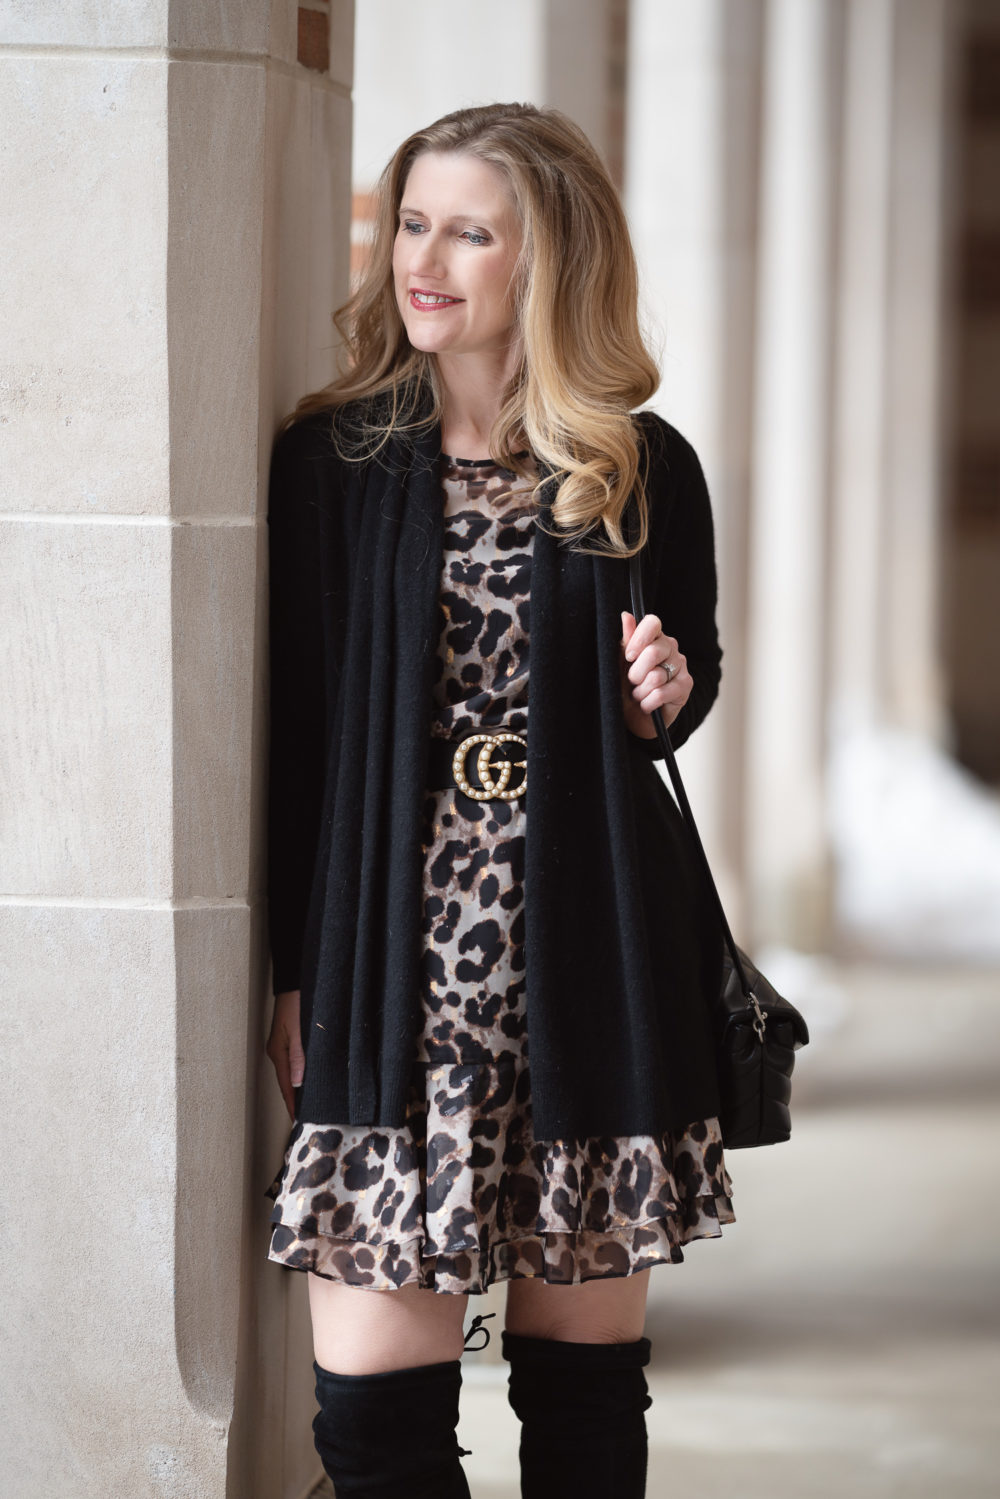 Petite Fashion and Style Blog |Eliza J Flounce Sleeve Leopard Dress | C by Bloomingdales cardigan | Stuart Weitzman Highland boots | Leopard Dress